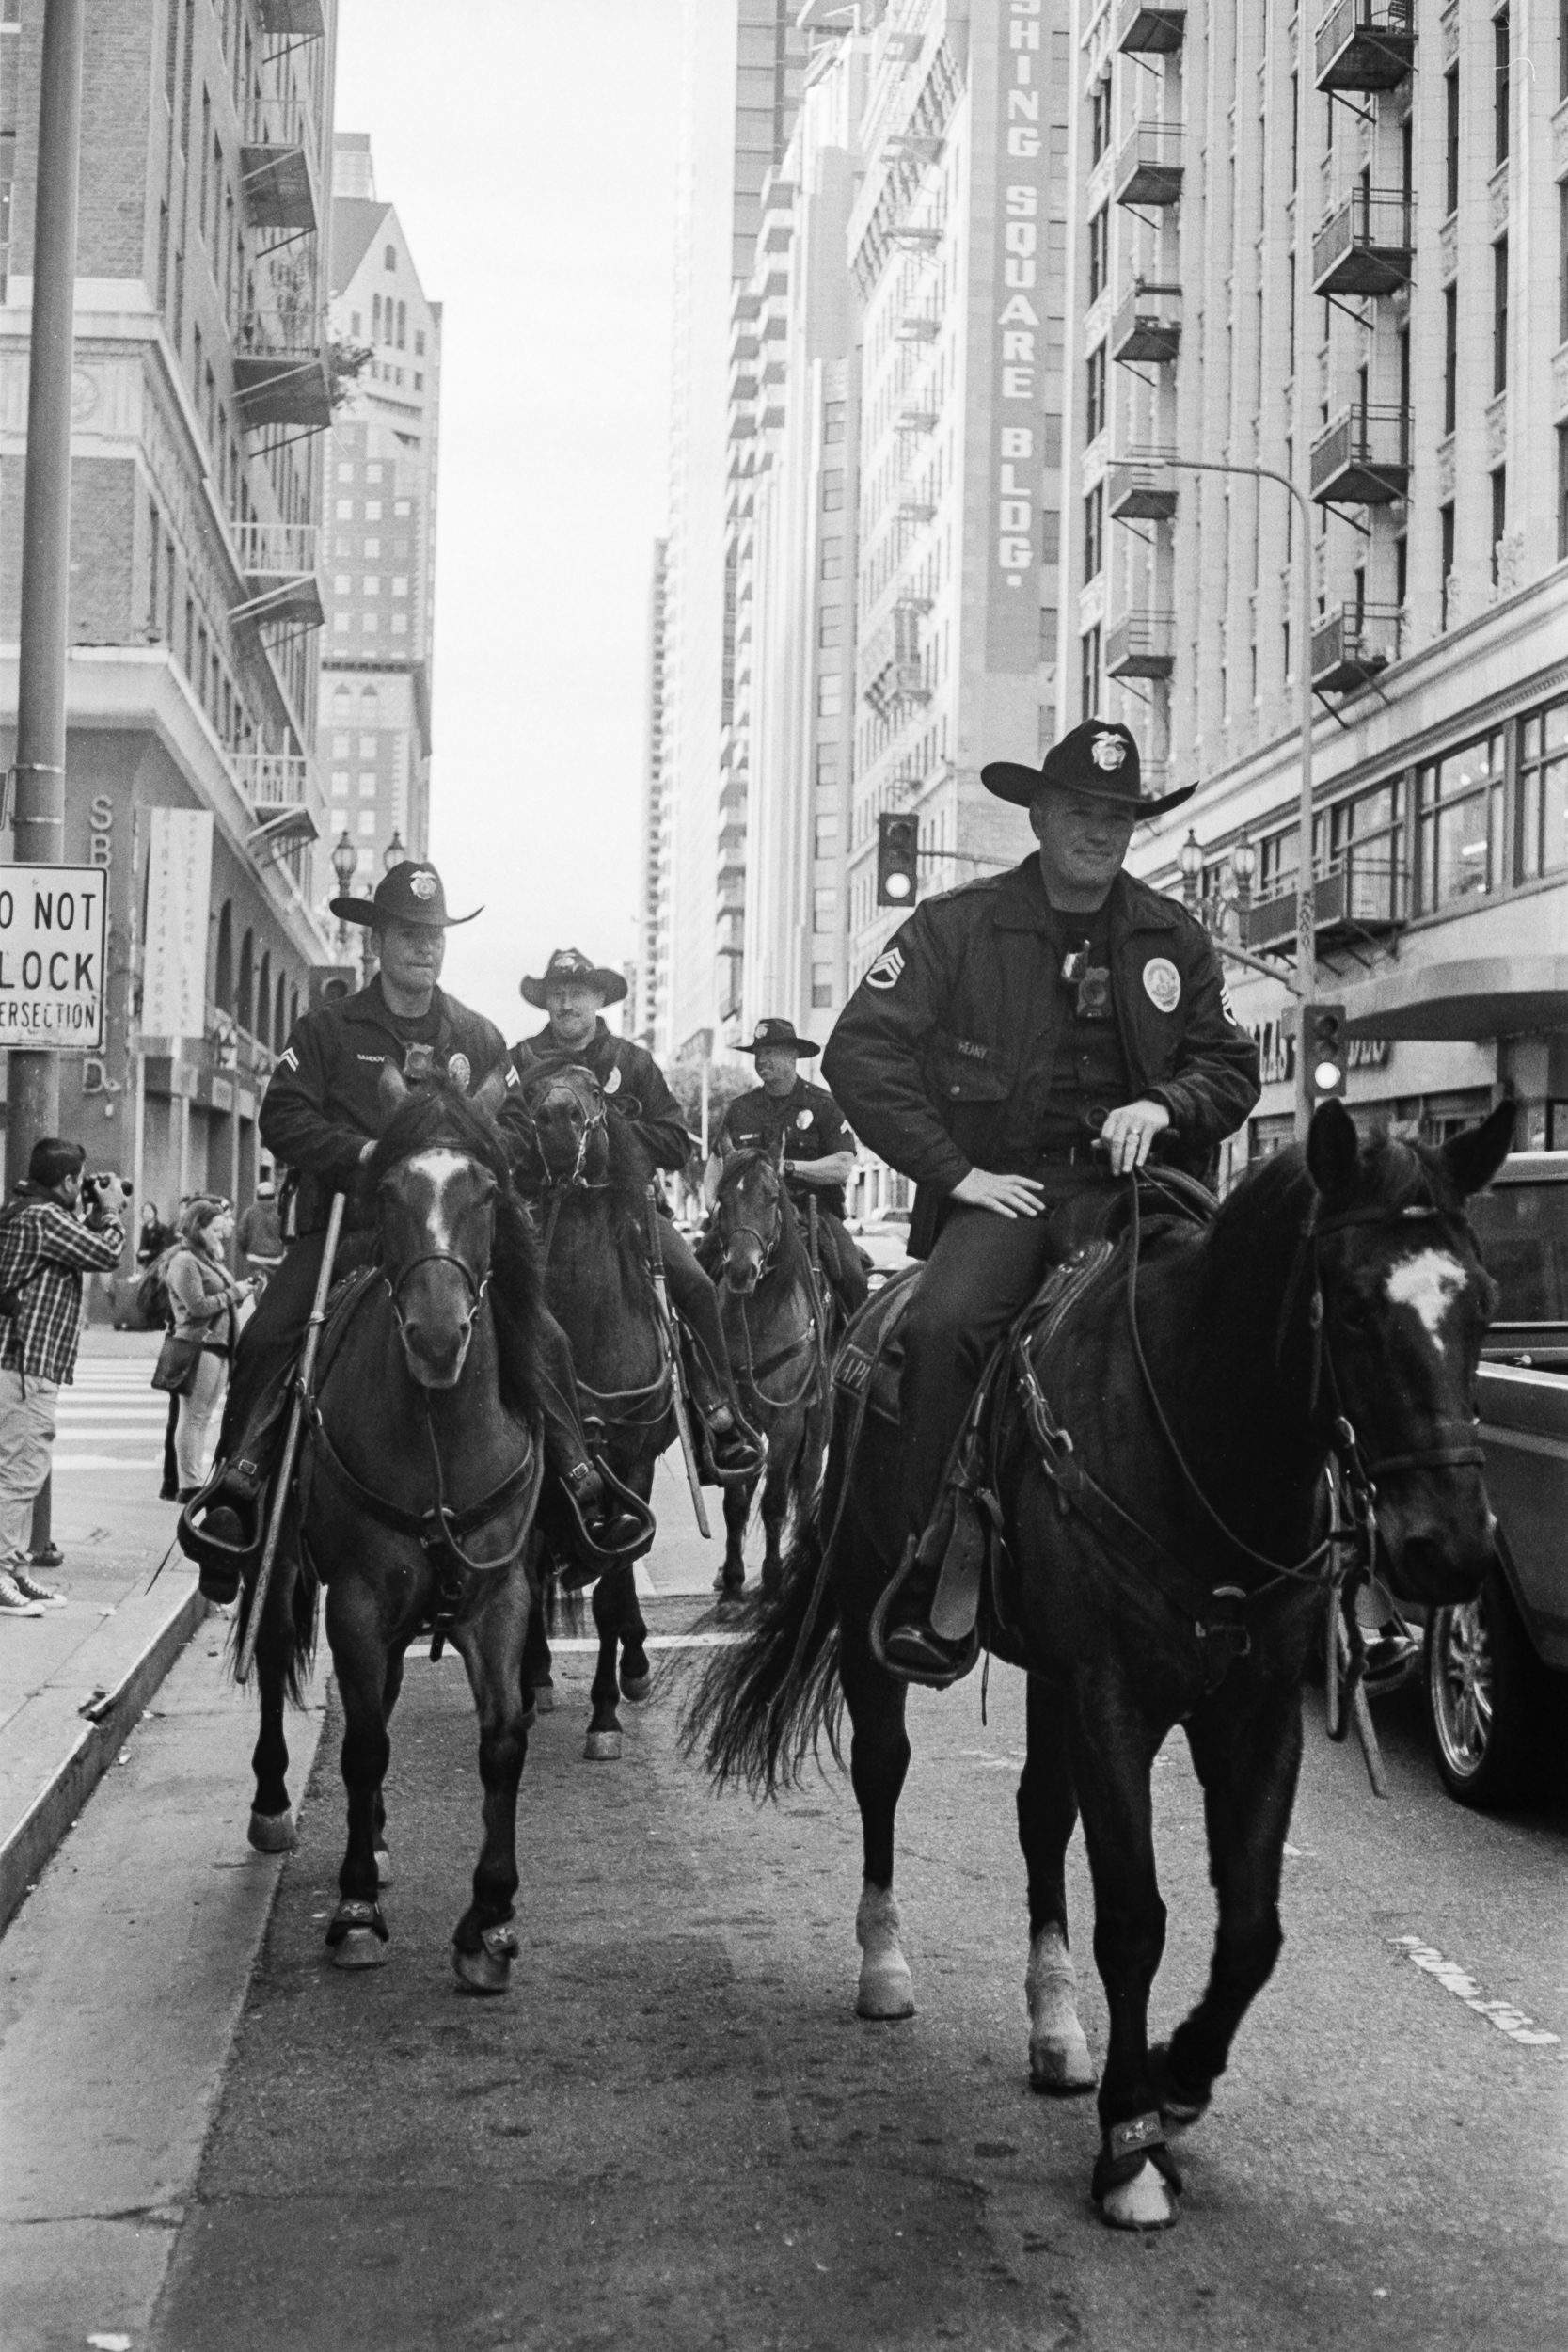 Mounted police patrol in Downtown Los Angeles, 2019.